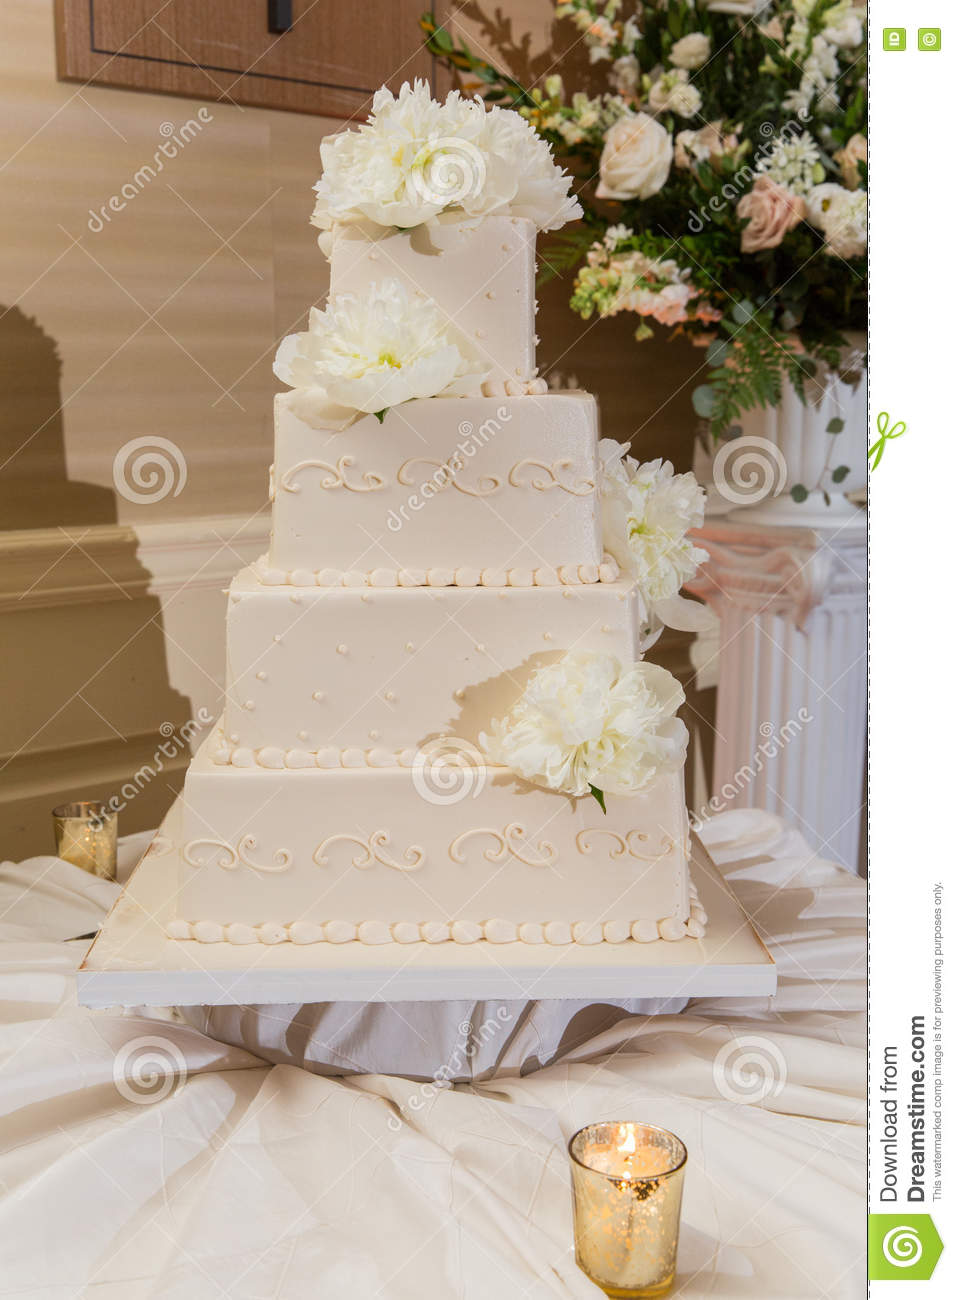 Beautiful Wedding Cake Stock Image Image Of Food Coffee